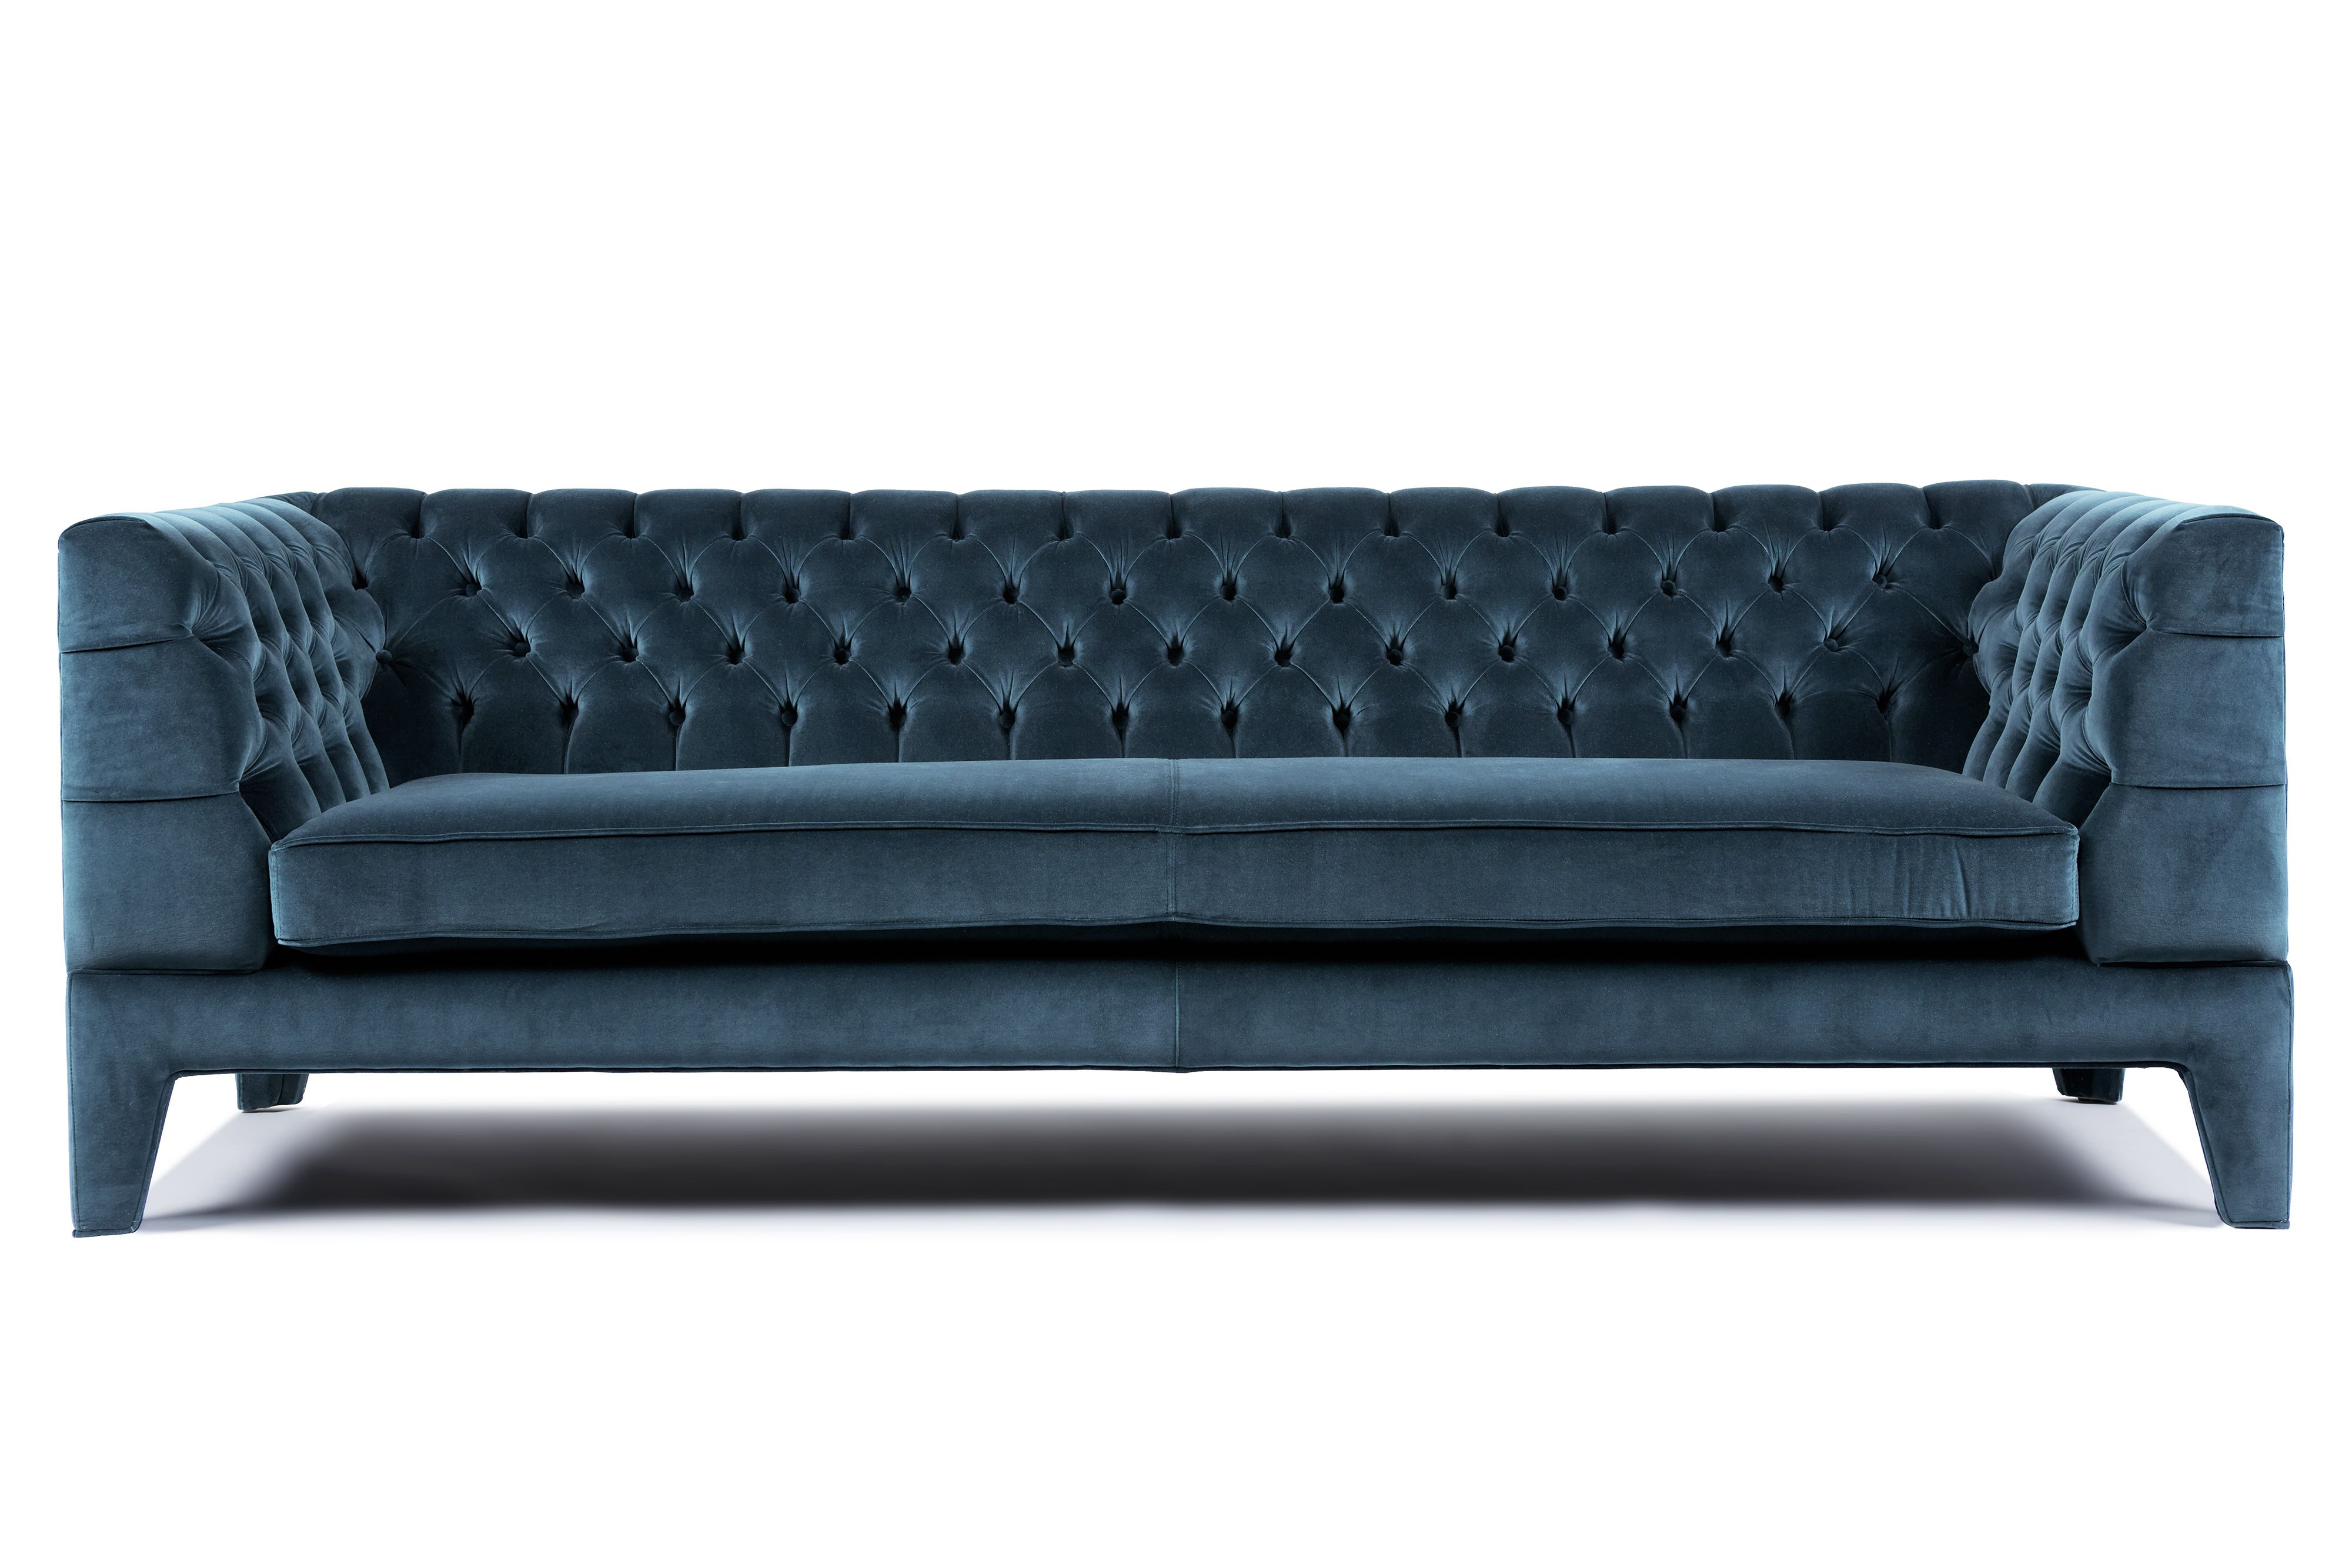 Velvet Sofas Melbourne England Sleeper Sofa With Full Size Mattress Claude By Arthur G Deep Buttoning Http